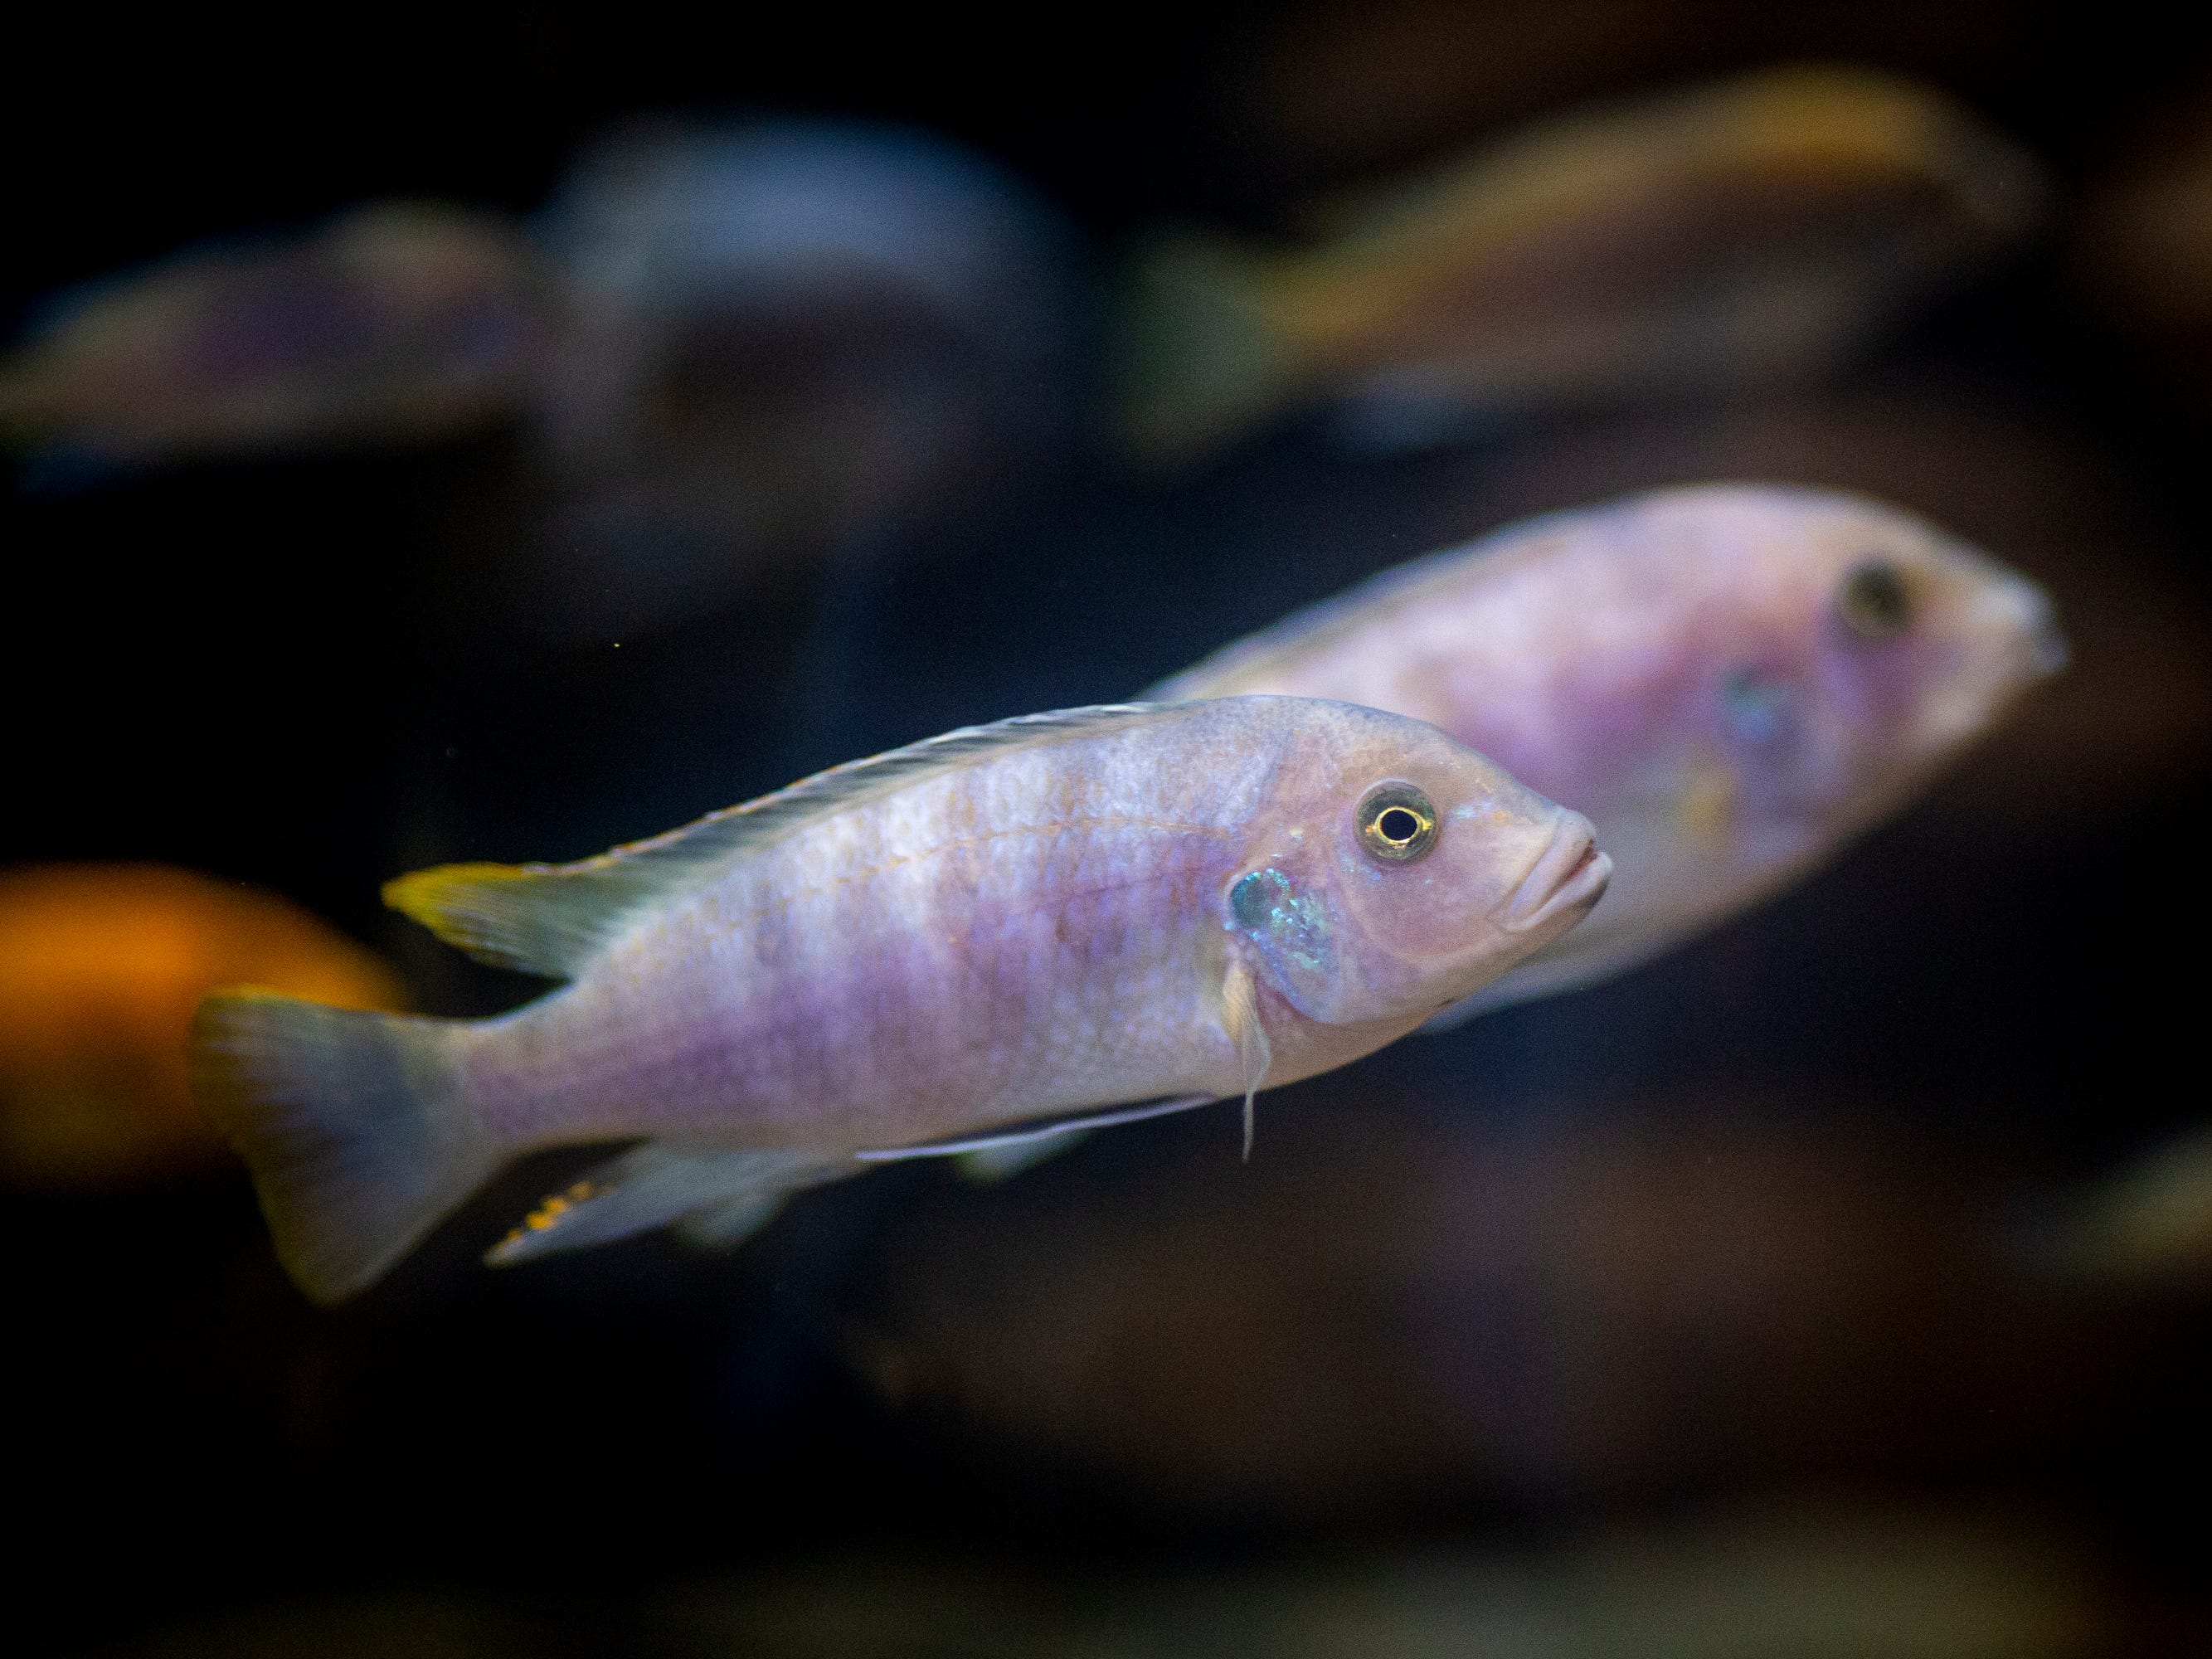 Lake Malawi cichlids swim in the Freshwater Falls exhibit at Newport Aquarium Thursday, April 11, 2019 in Newport, Ky.  Lake Malawi is famous for its vibrant color cichlids, and has the most fish species than any lake on Earth.